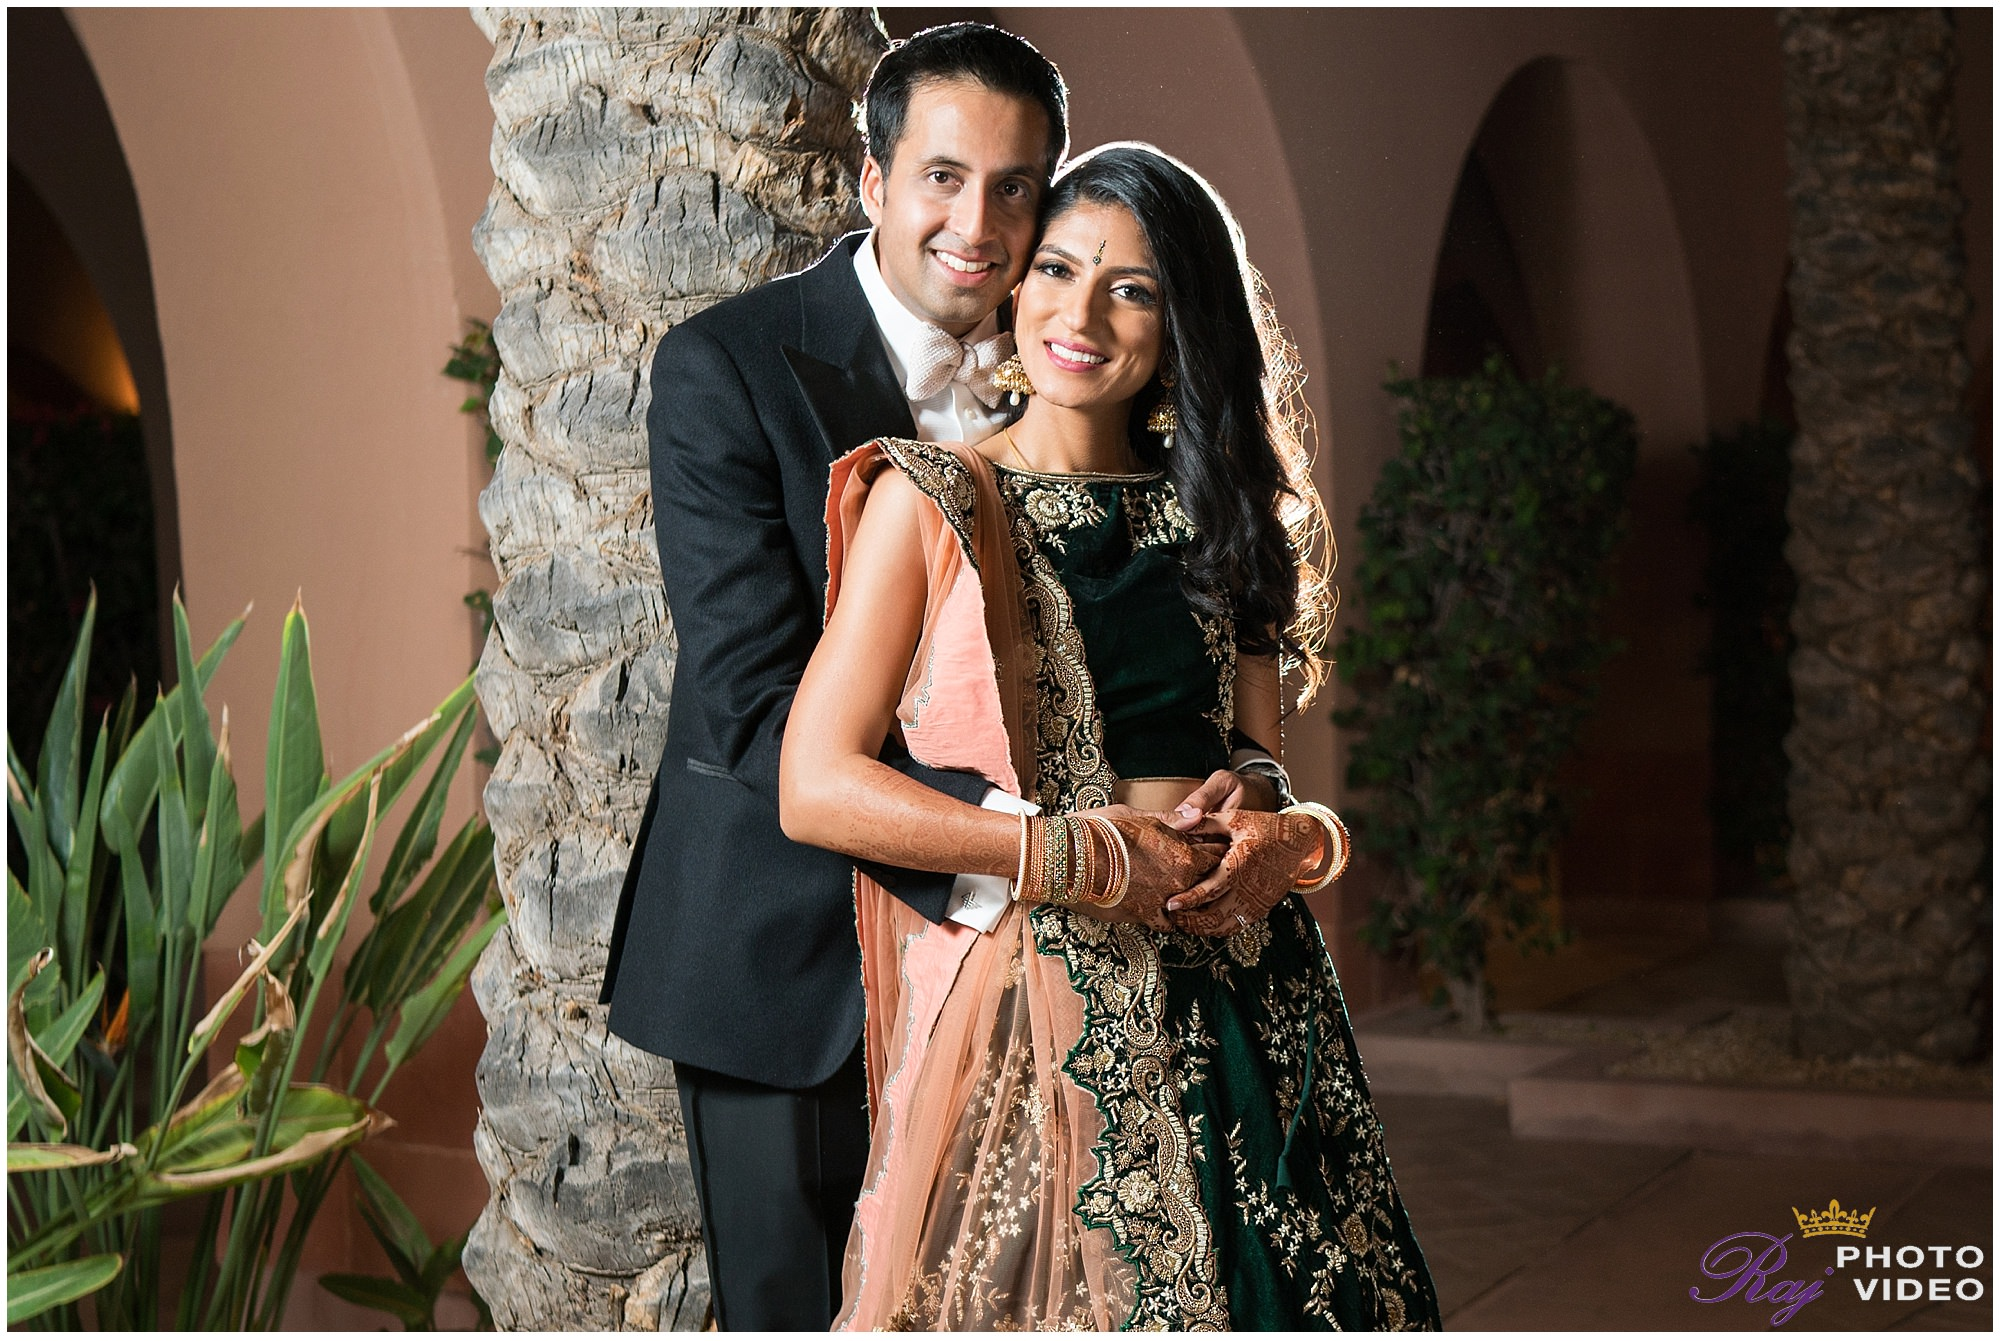 Scottsdale_Marriott_at_McDowell_Mountains_Arizona_Indian_Wedding_Sapna_Shyam-74.jpg